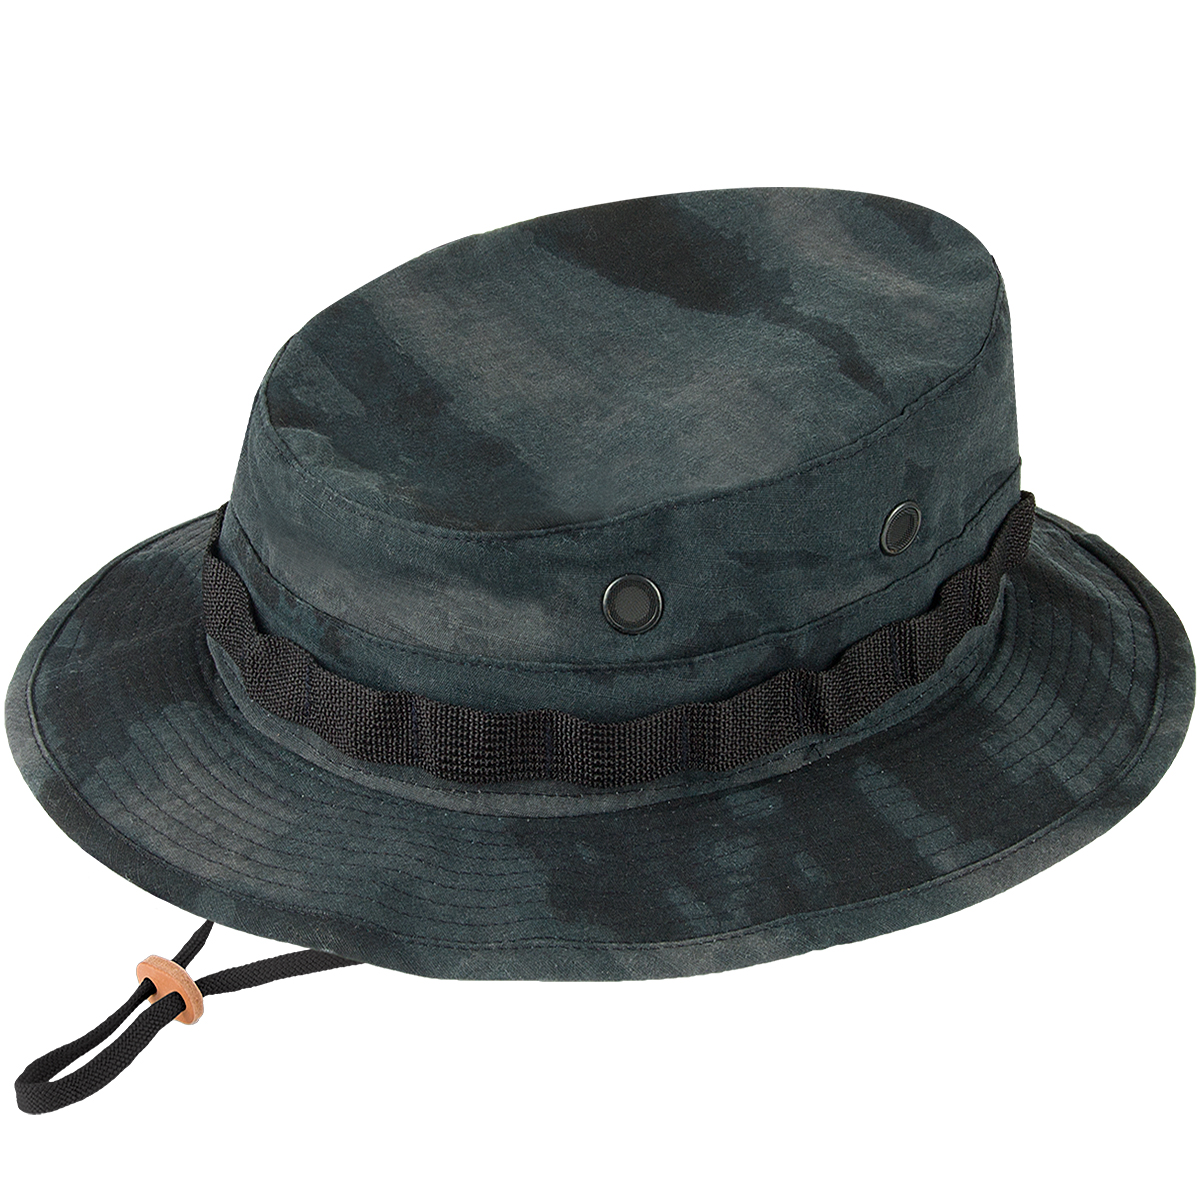 Details about Propper Boonie Hat Wide-Brim Mens Army Security Patrol Giggle  A-TACS LE Camo dbd754b866a